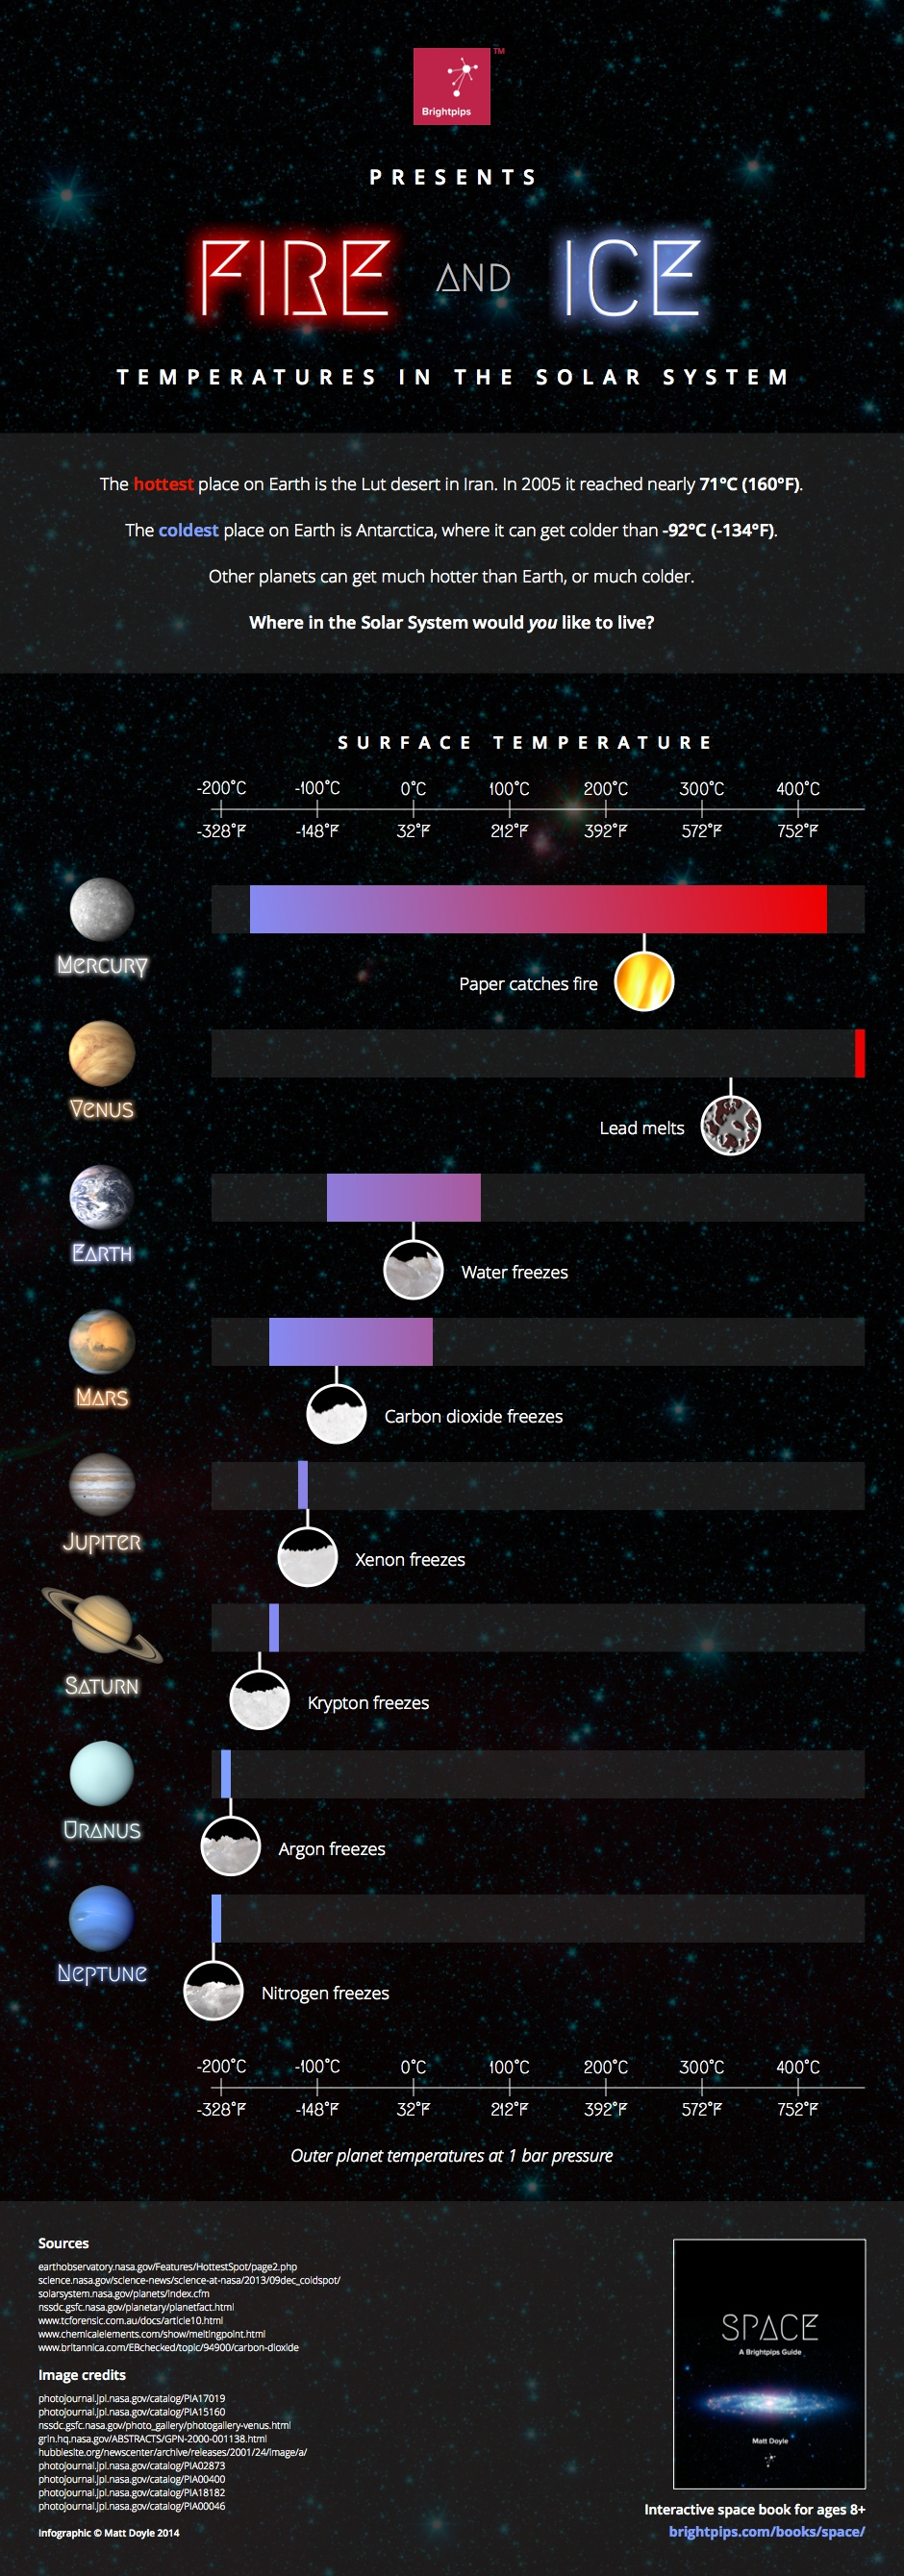 Temperatures of the Solar System planets (infographic)